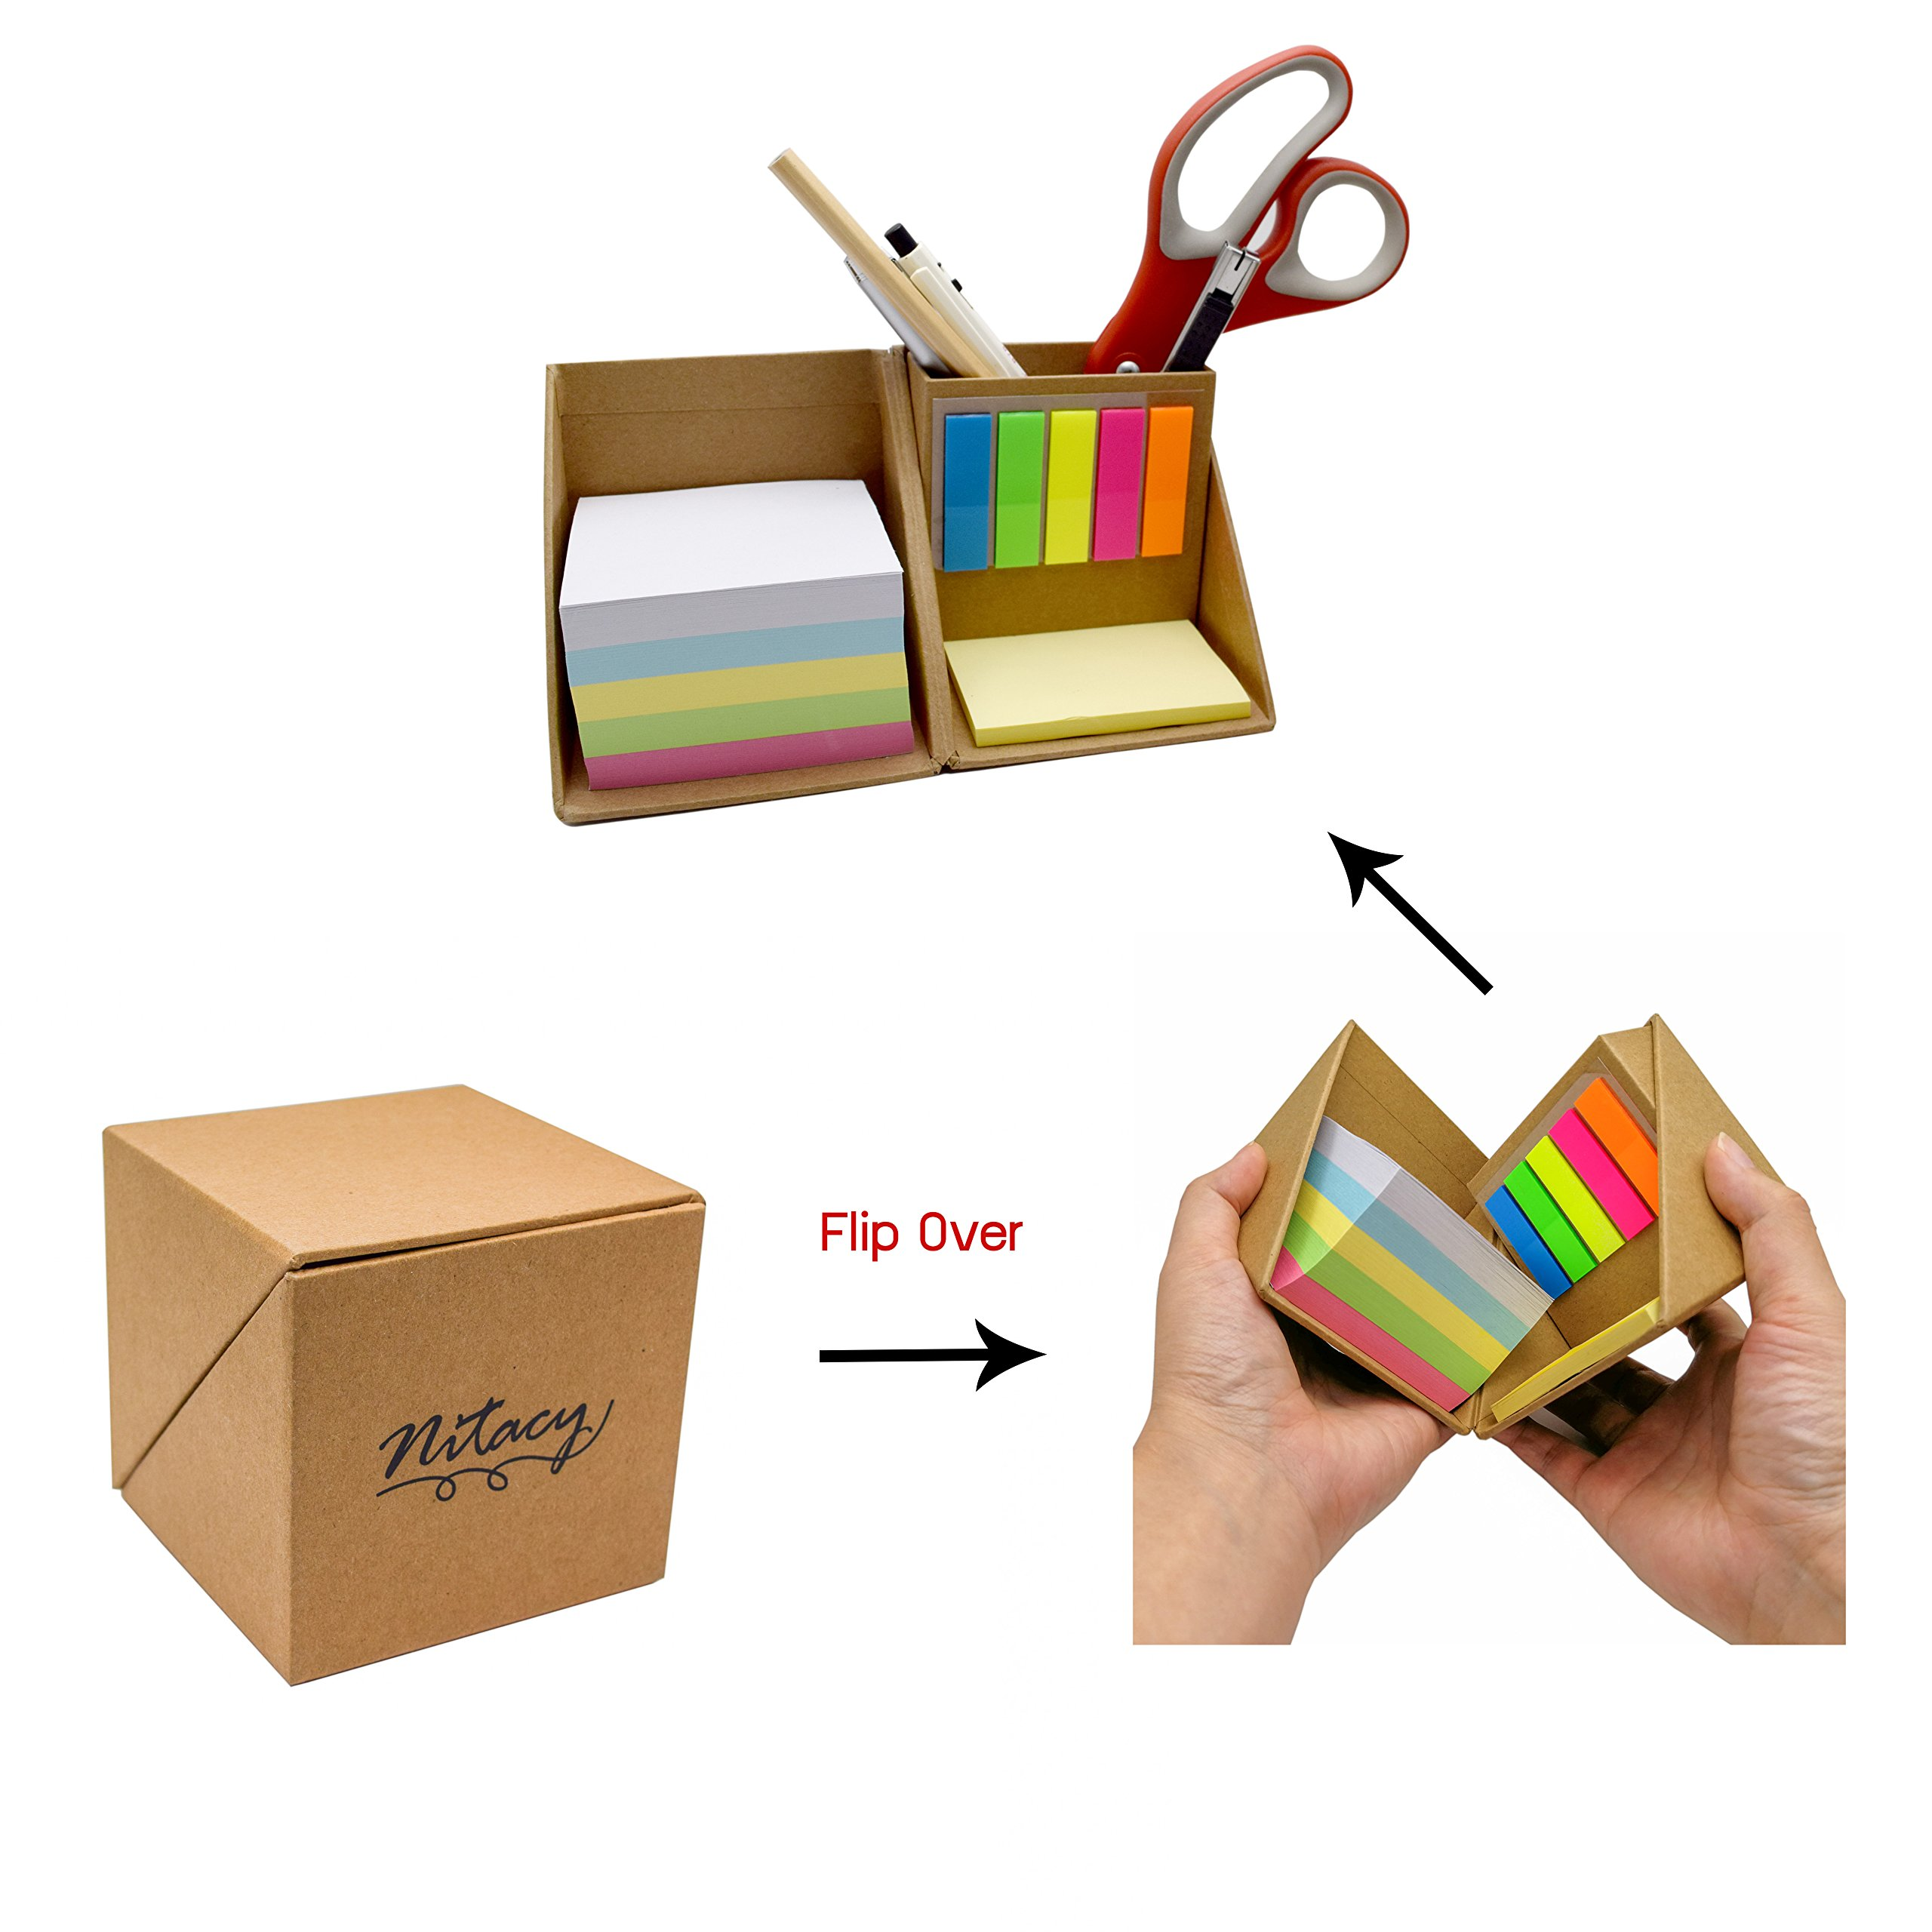 Nitacy Office Supplies Desk Organizer Blank Memo Note Pads Yellow Sticky Notes and Page Marker Colored Index Tabs Flags with Pen Pencil Holder in Recycle Kraft Box